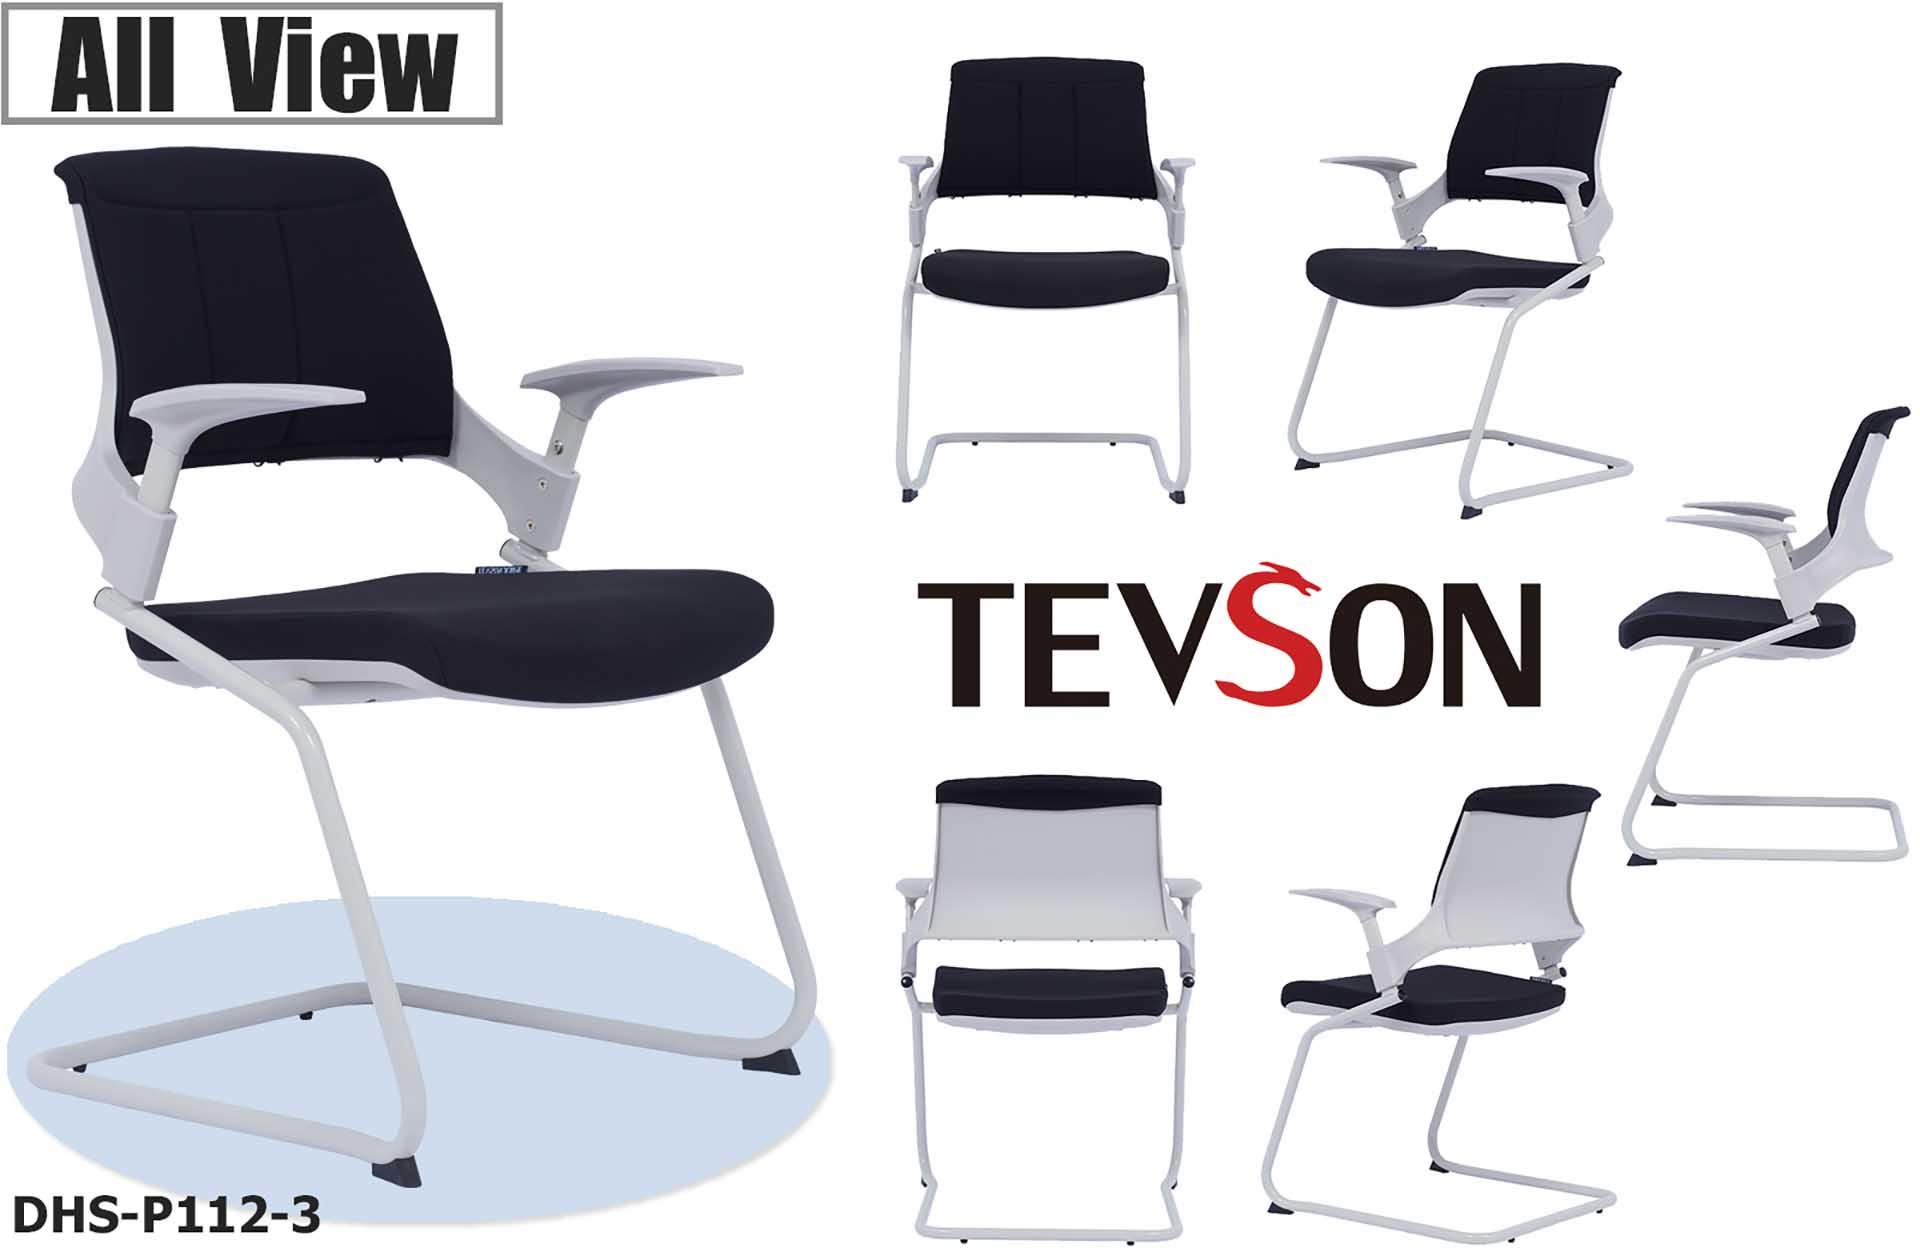 Tevson heavy modern conference room chairs certifications